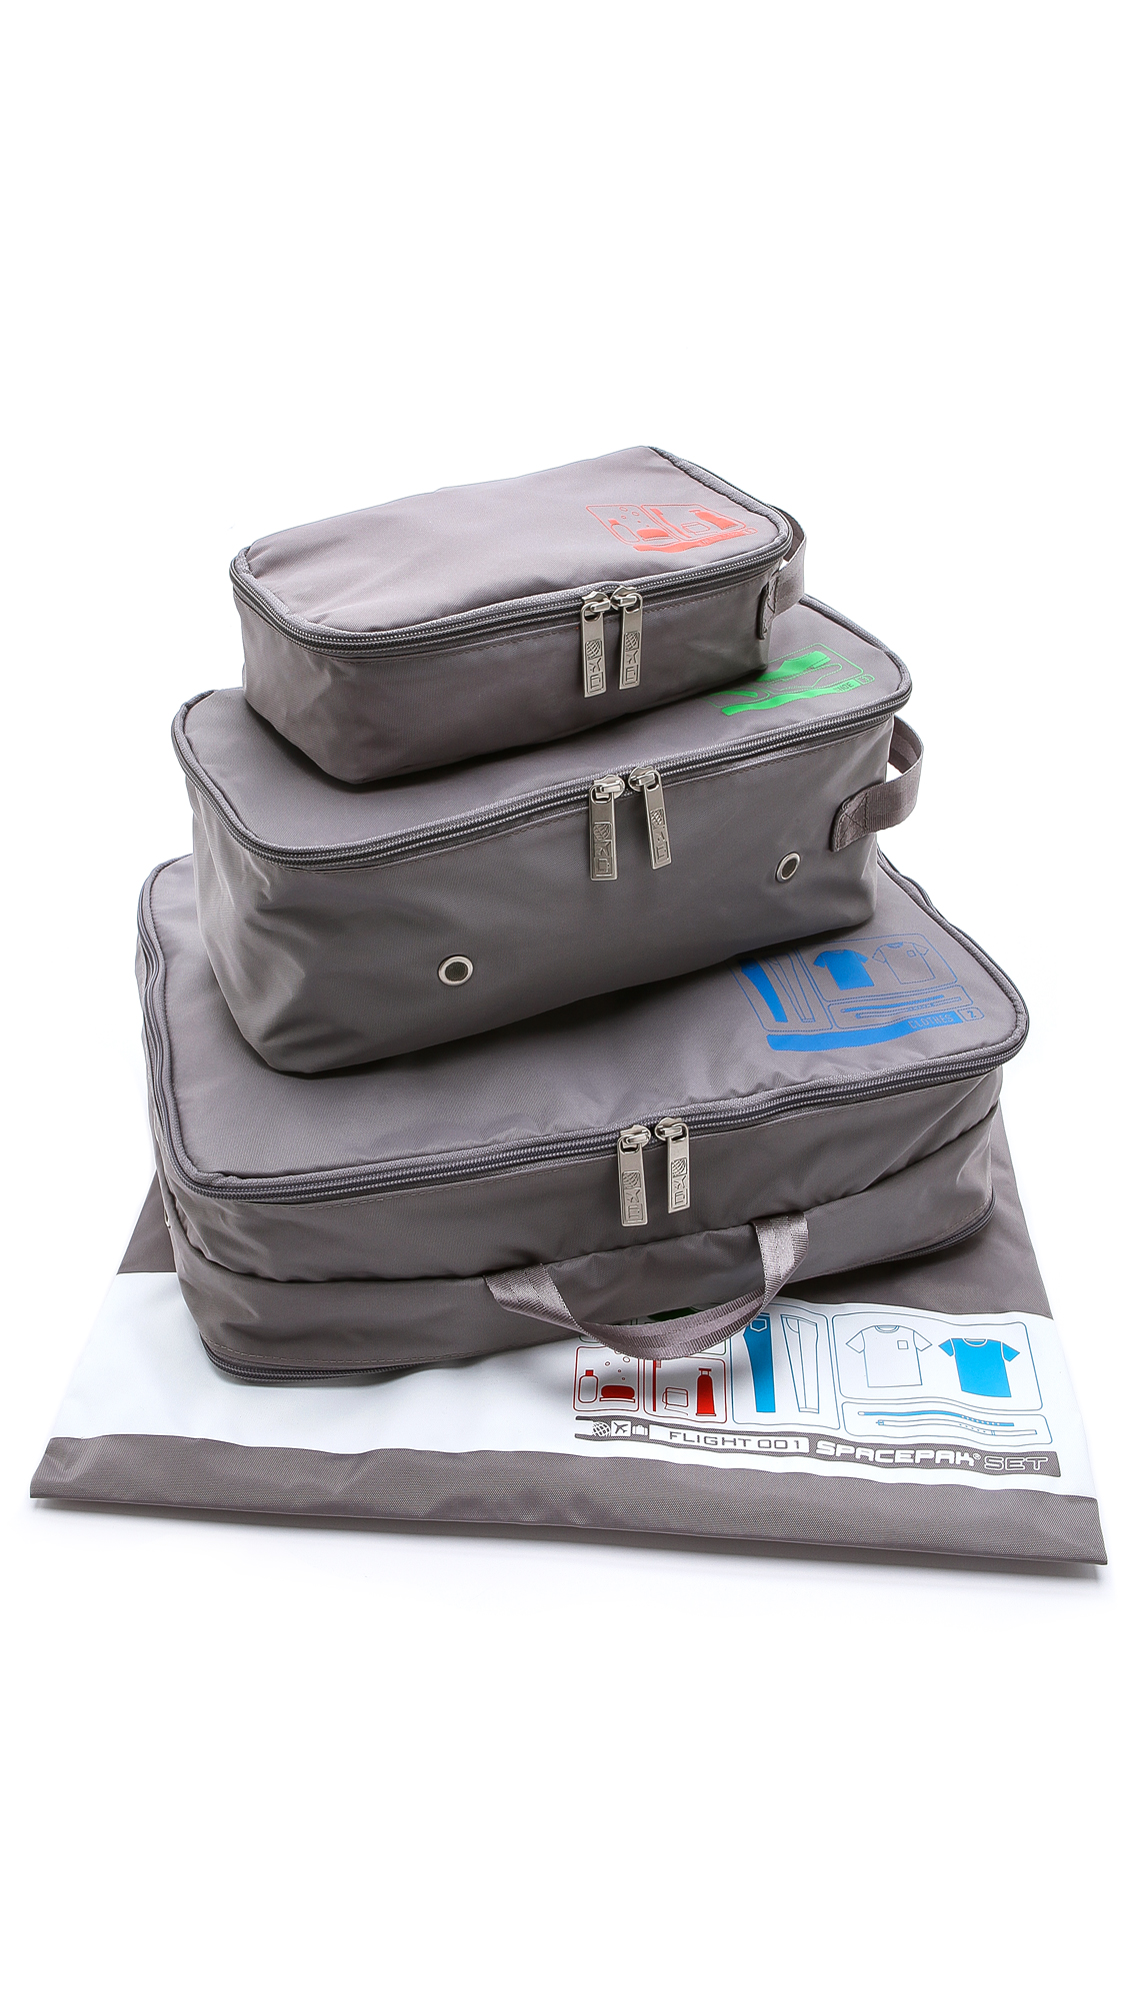 groomsmen gift guide flight 001 space pack clothing bag set